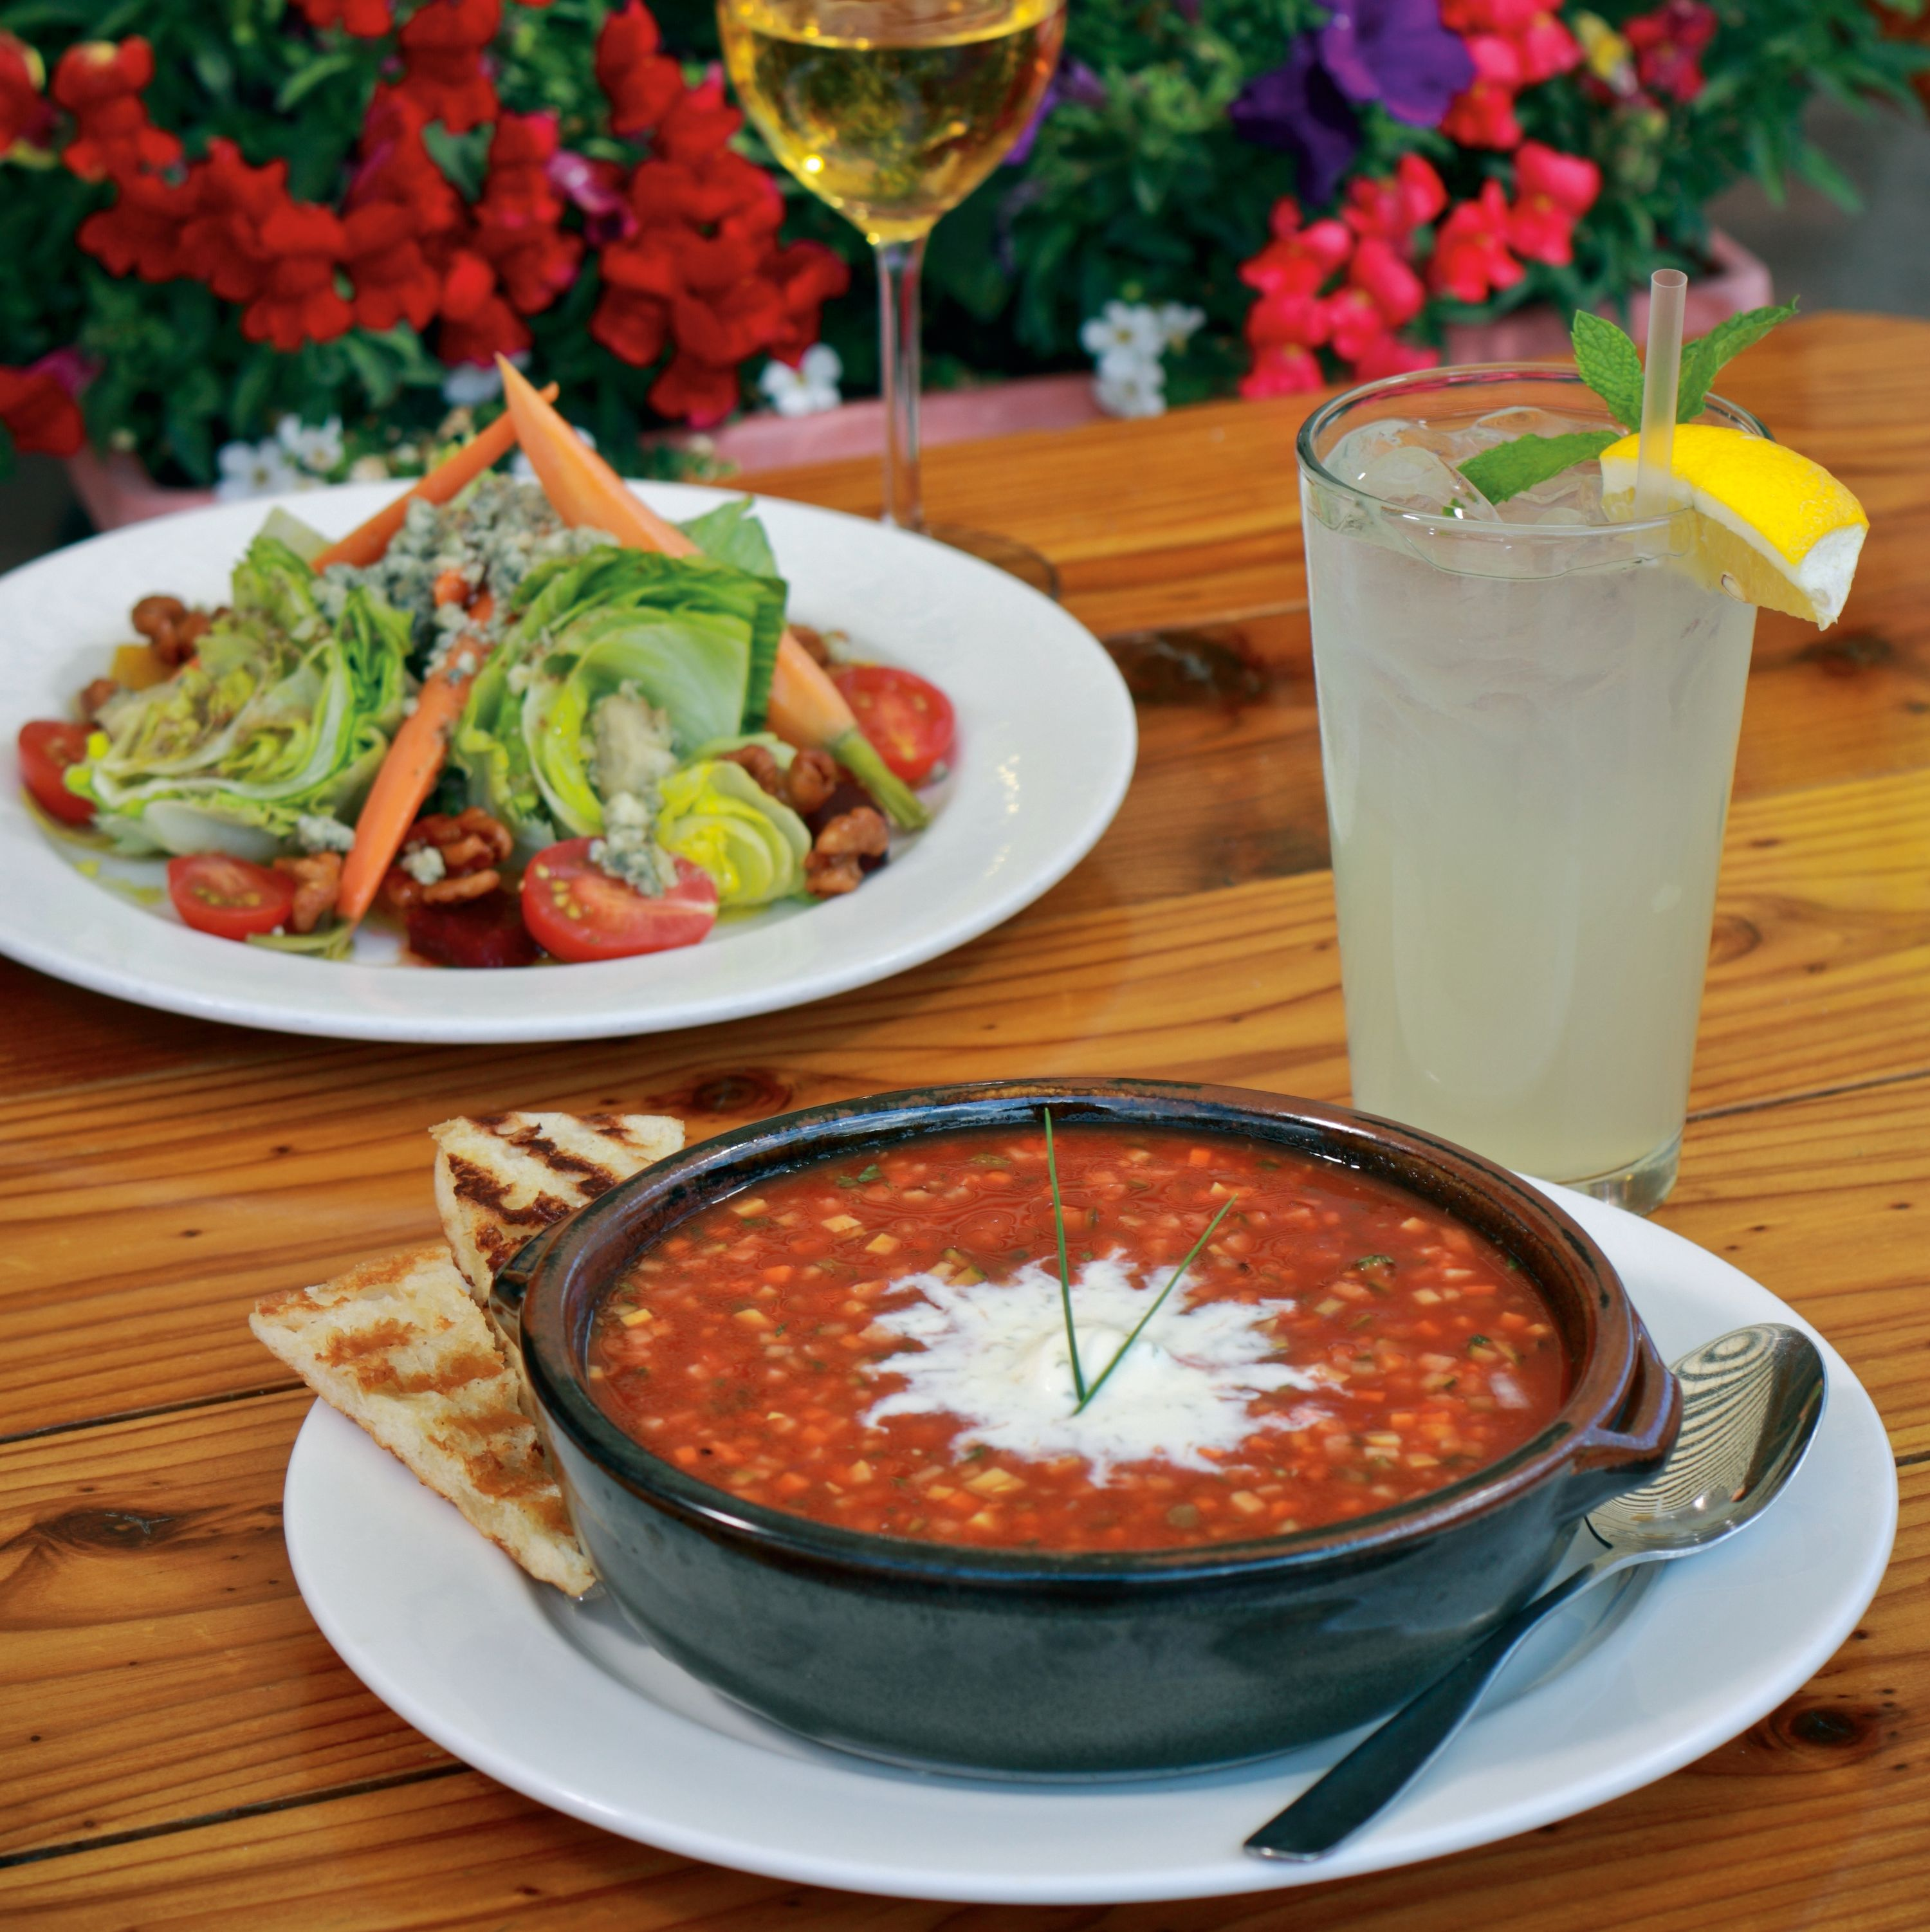 Park city summer 2013 dining souped up r38eb2